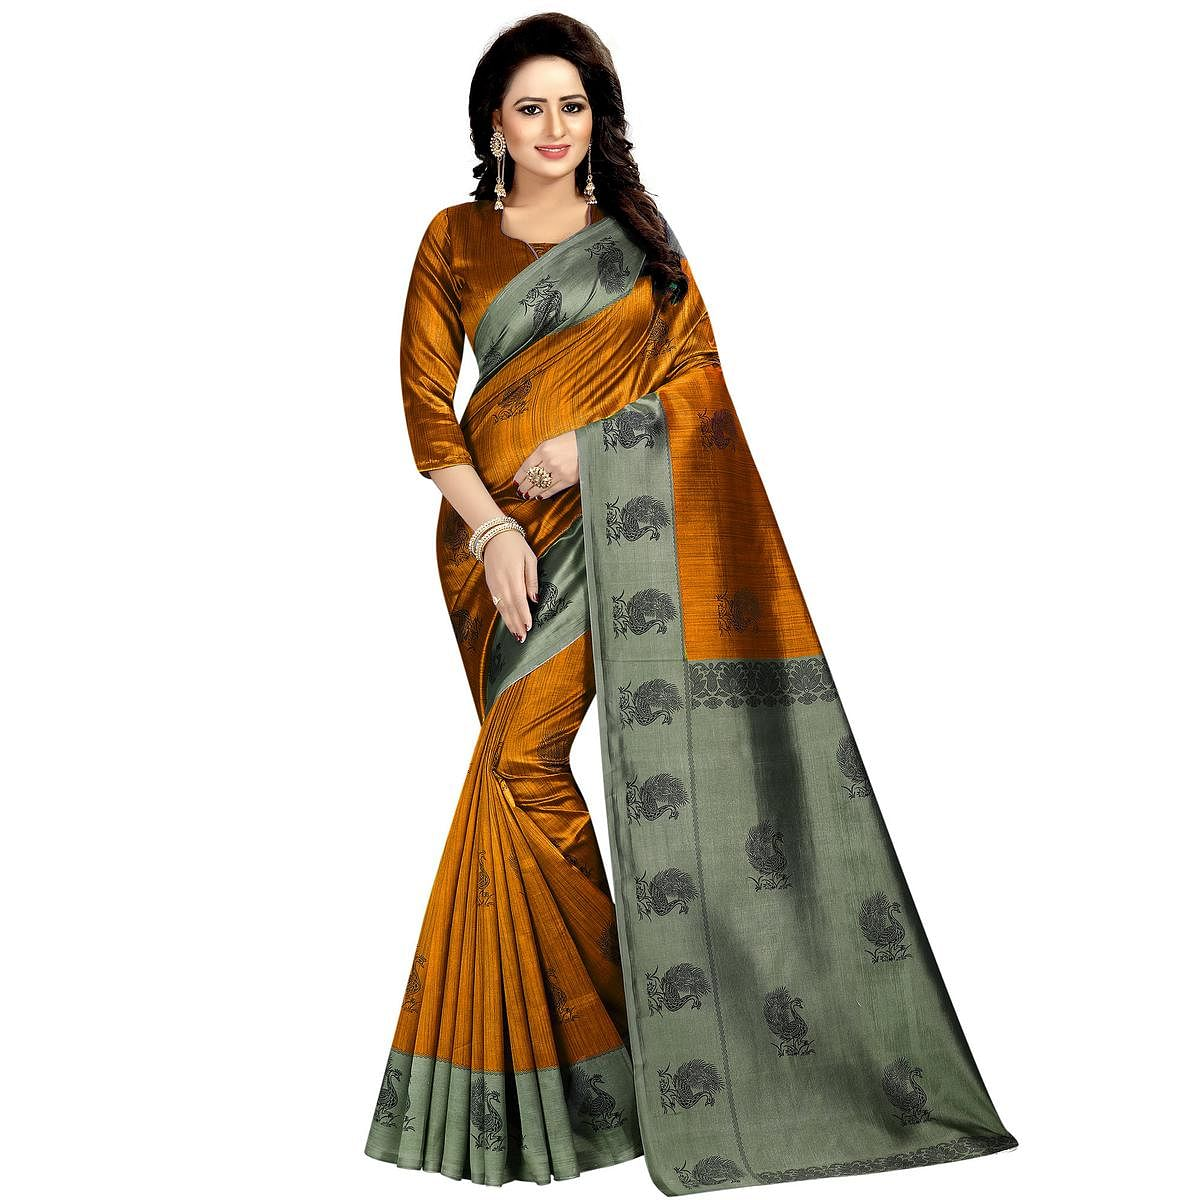 Graceful Rust Orange Colored Festive Wear Printed Mysore Silk Saree